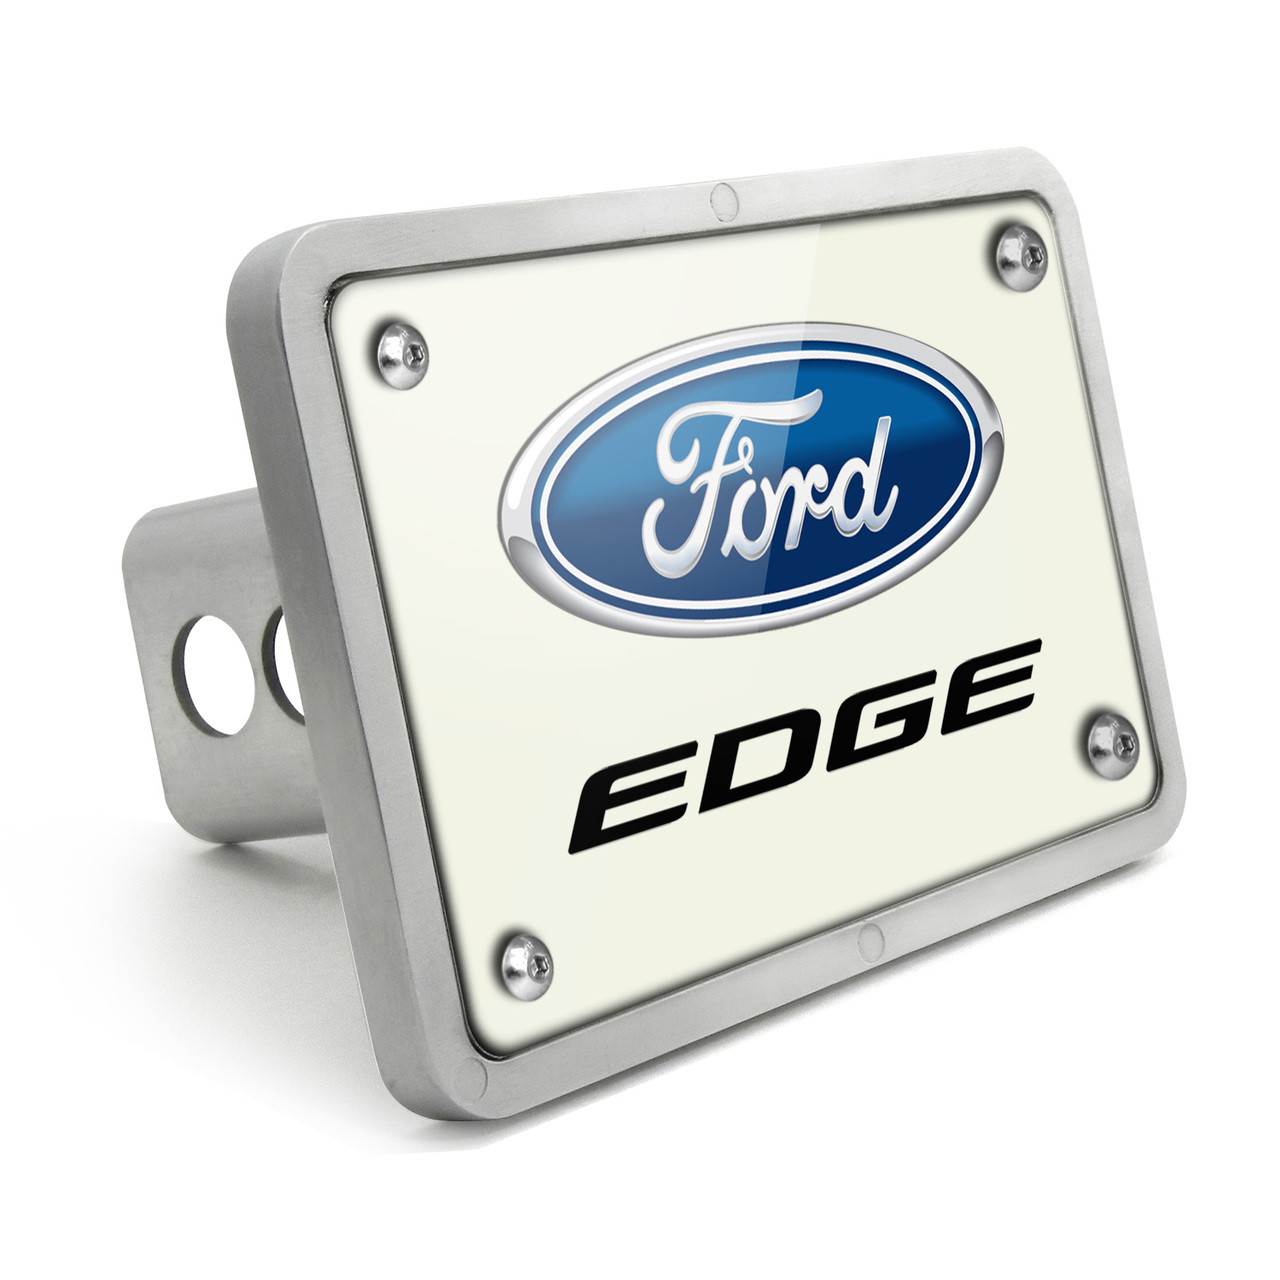 Ford Explorer Carbon Fiber Look UV Graphic Metal Plate on ABS Plastic 2 inch Tow Hitch Cover Made in USA